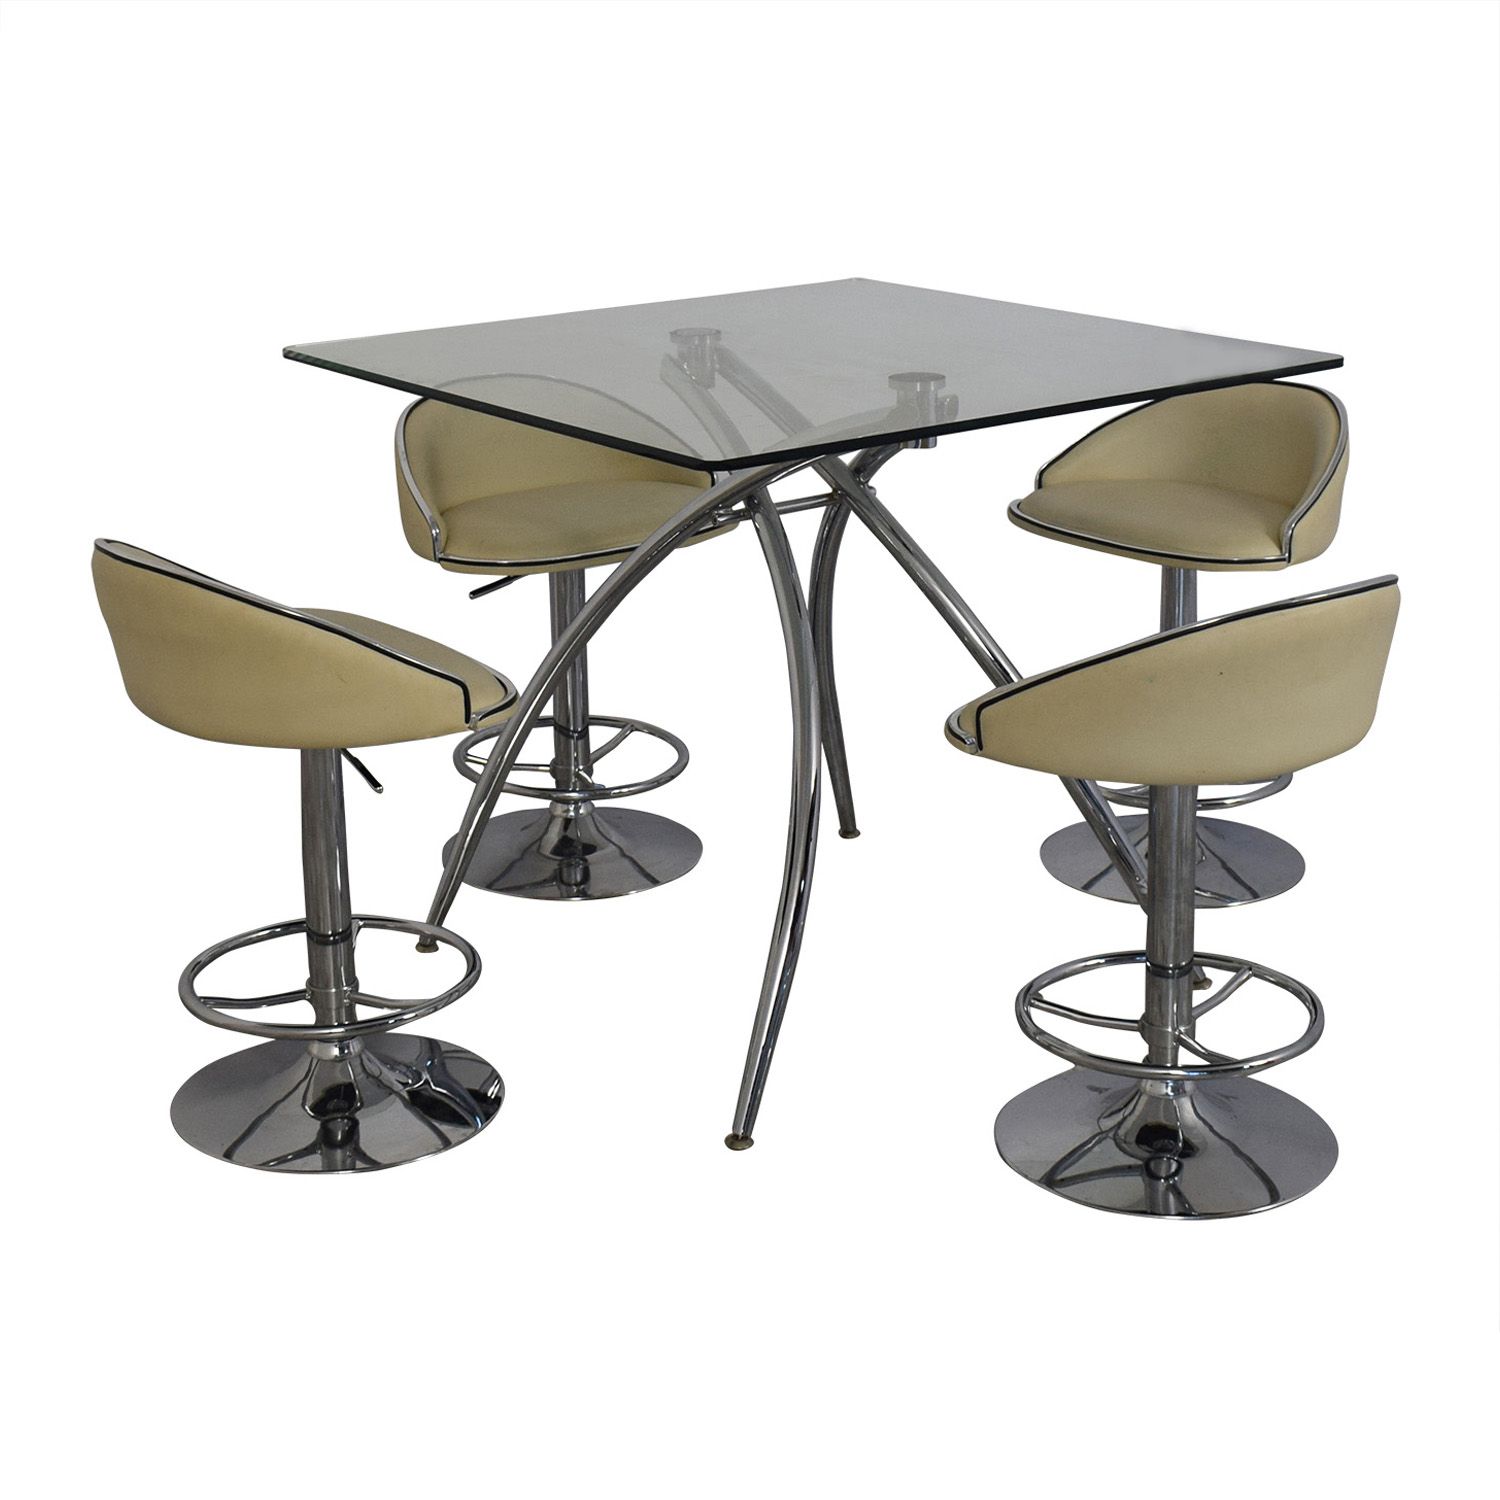 Chintaly Imports Chintaly Imports Adjustable Bar Stools and Glass Table Set discount